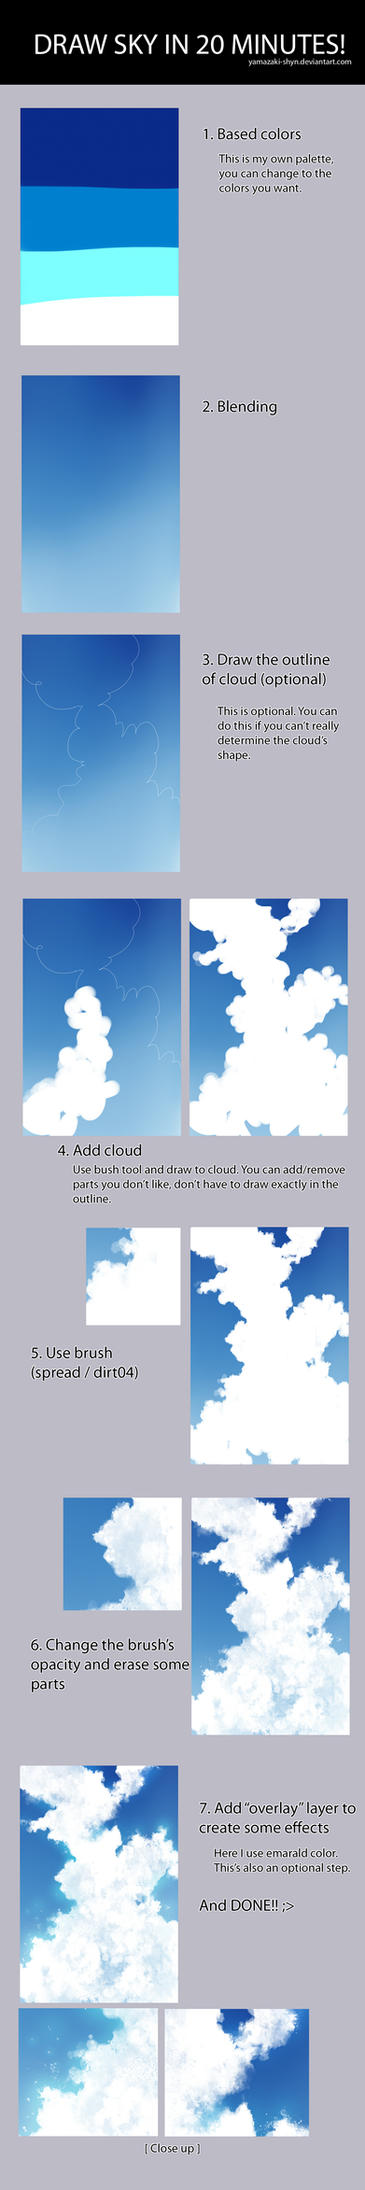 Tutorial: How to draw sky in 20 minutes [SAI] by yamashyn